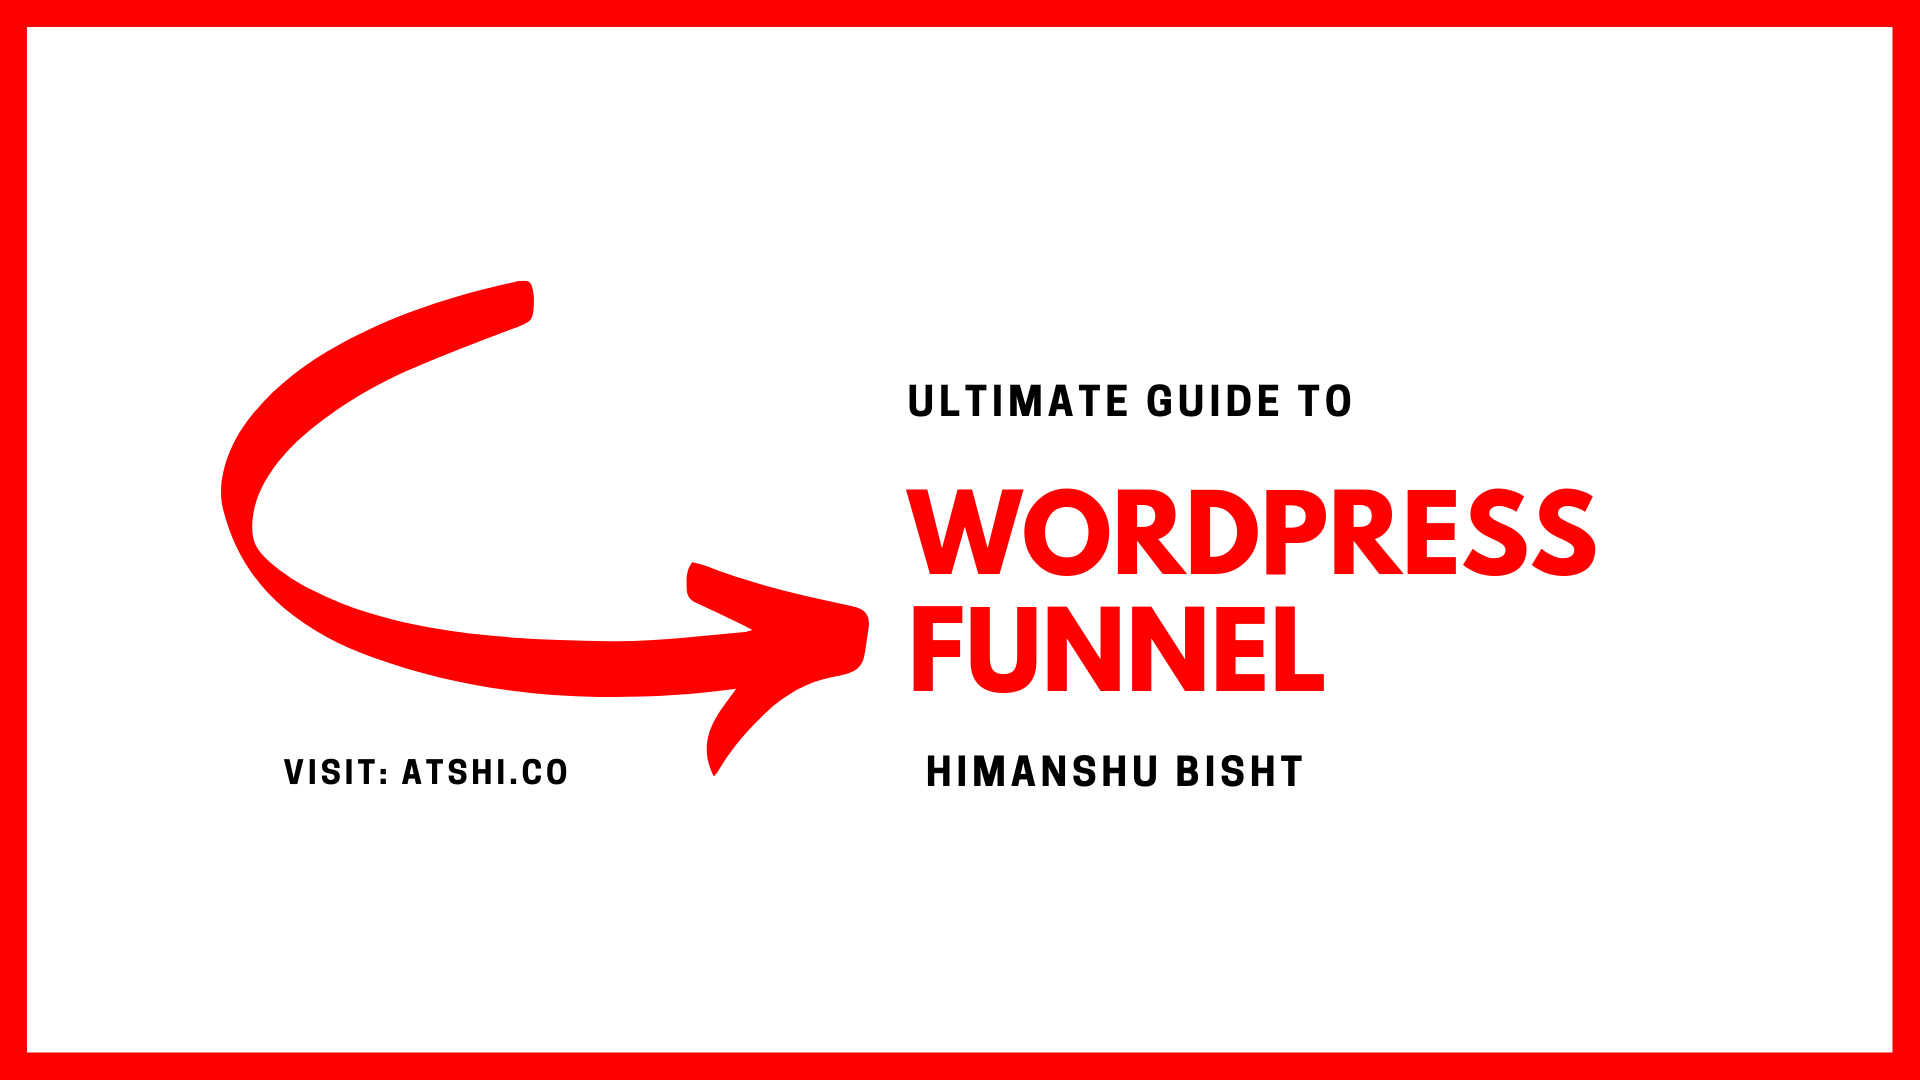 GUIDE TO WORDPRESS SALES FUNNEL